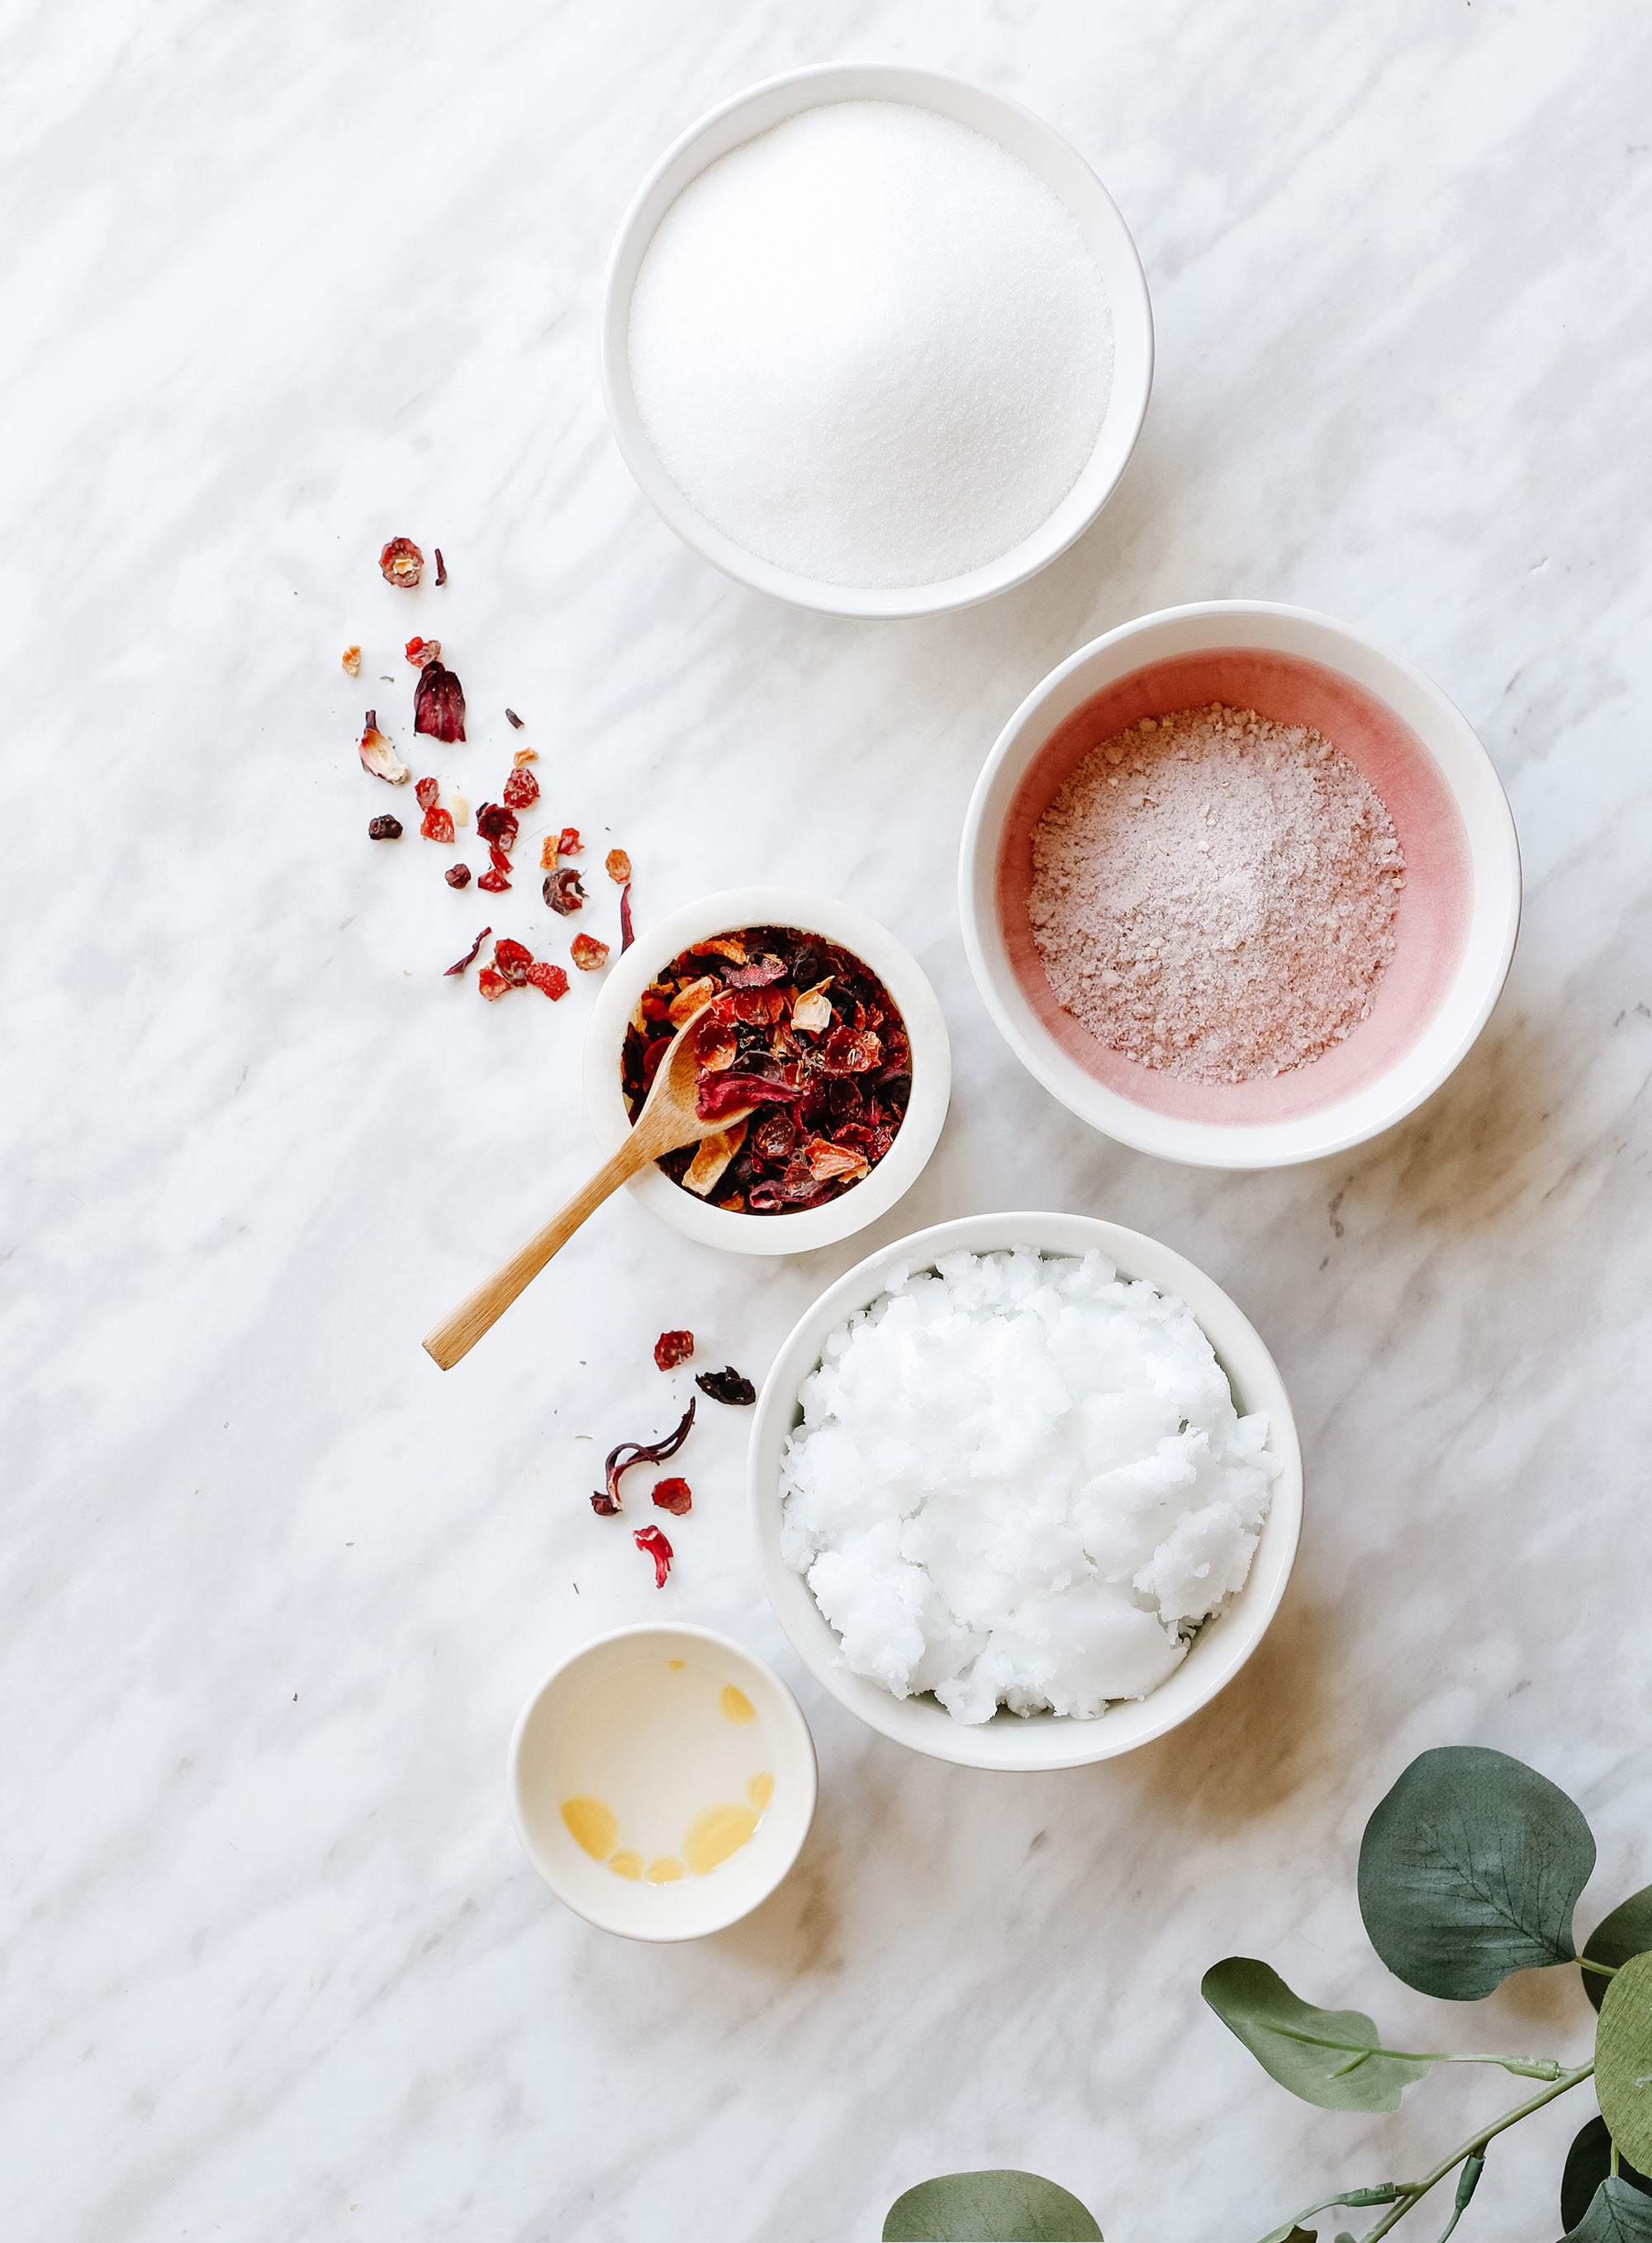 Ingredients for Rose Sugar Body Scrub for Mother's Day